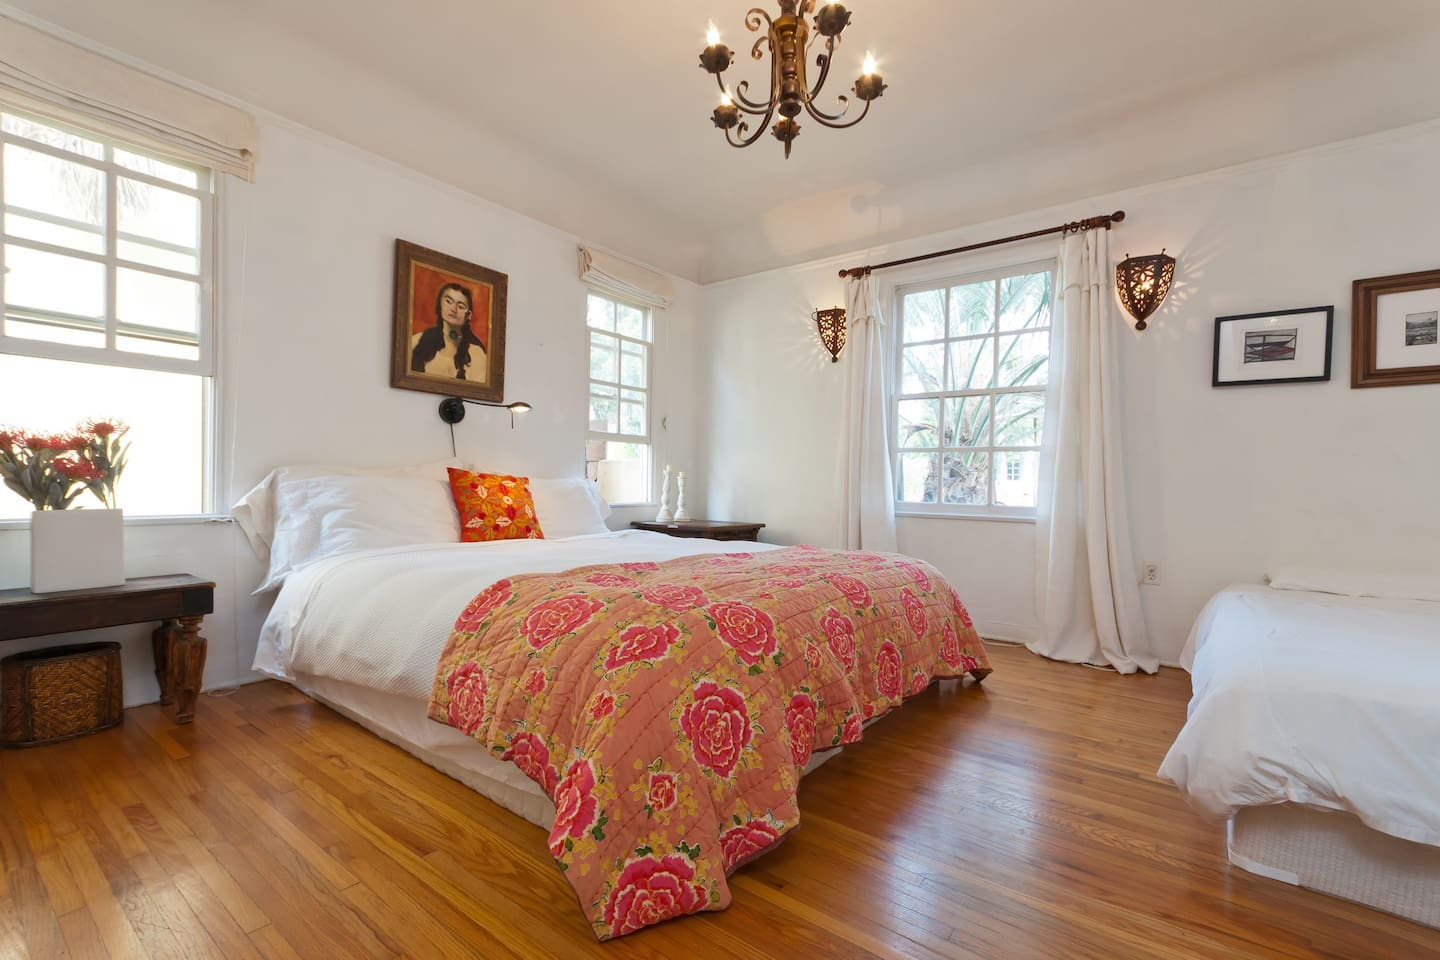 Spanish room with california king bed and twin bed